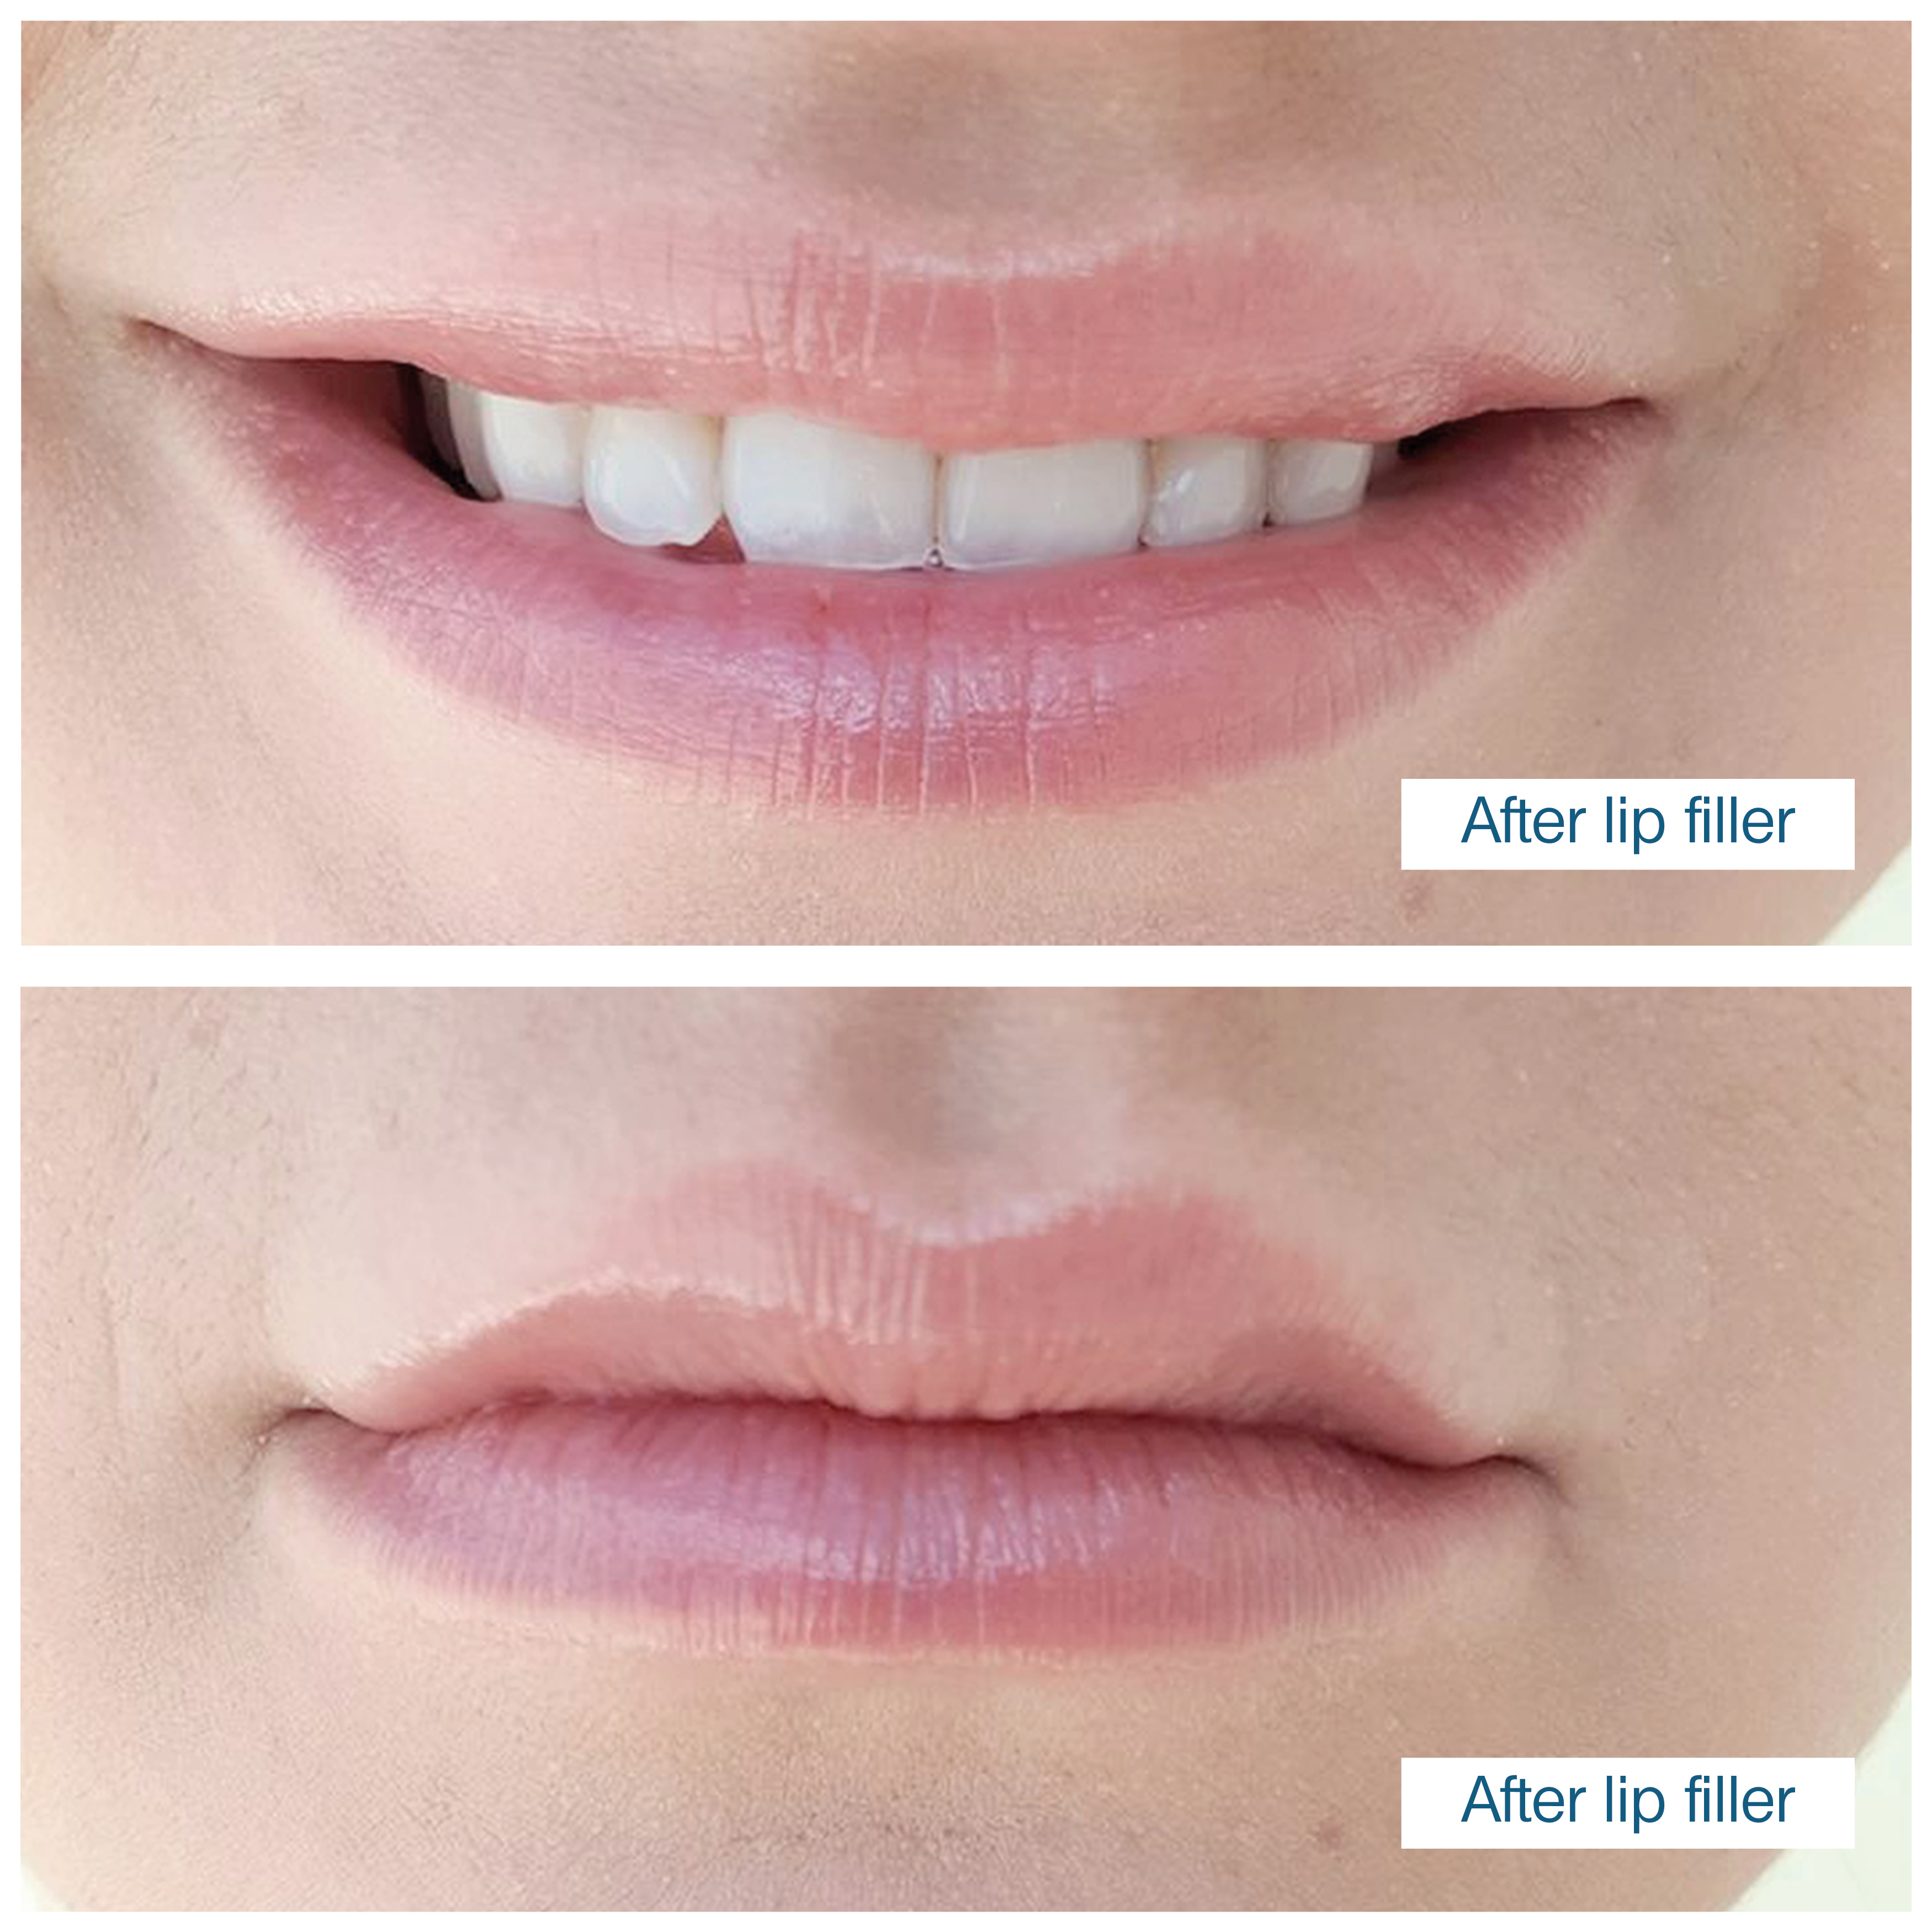 Lip filler by Edinburgh specialists